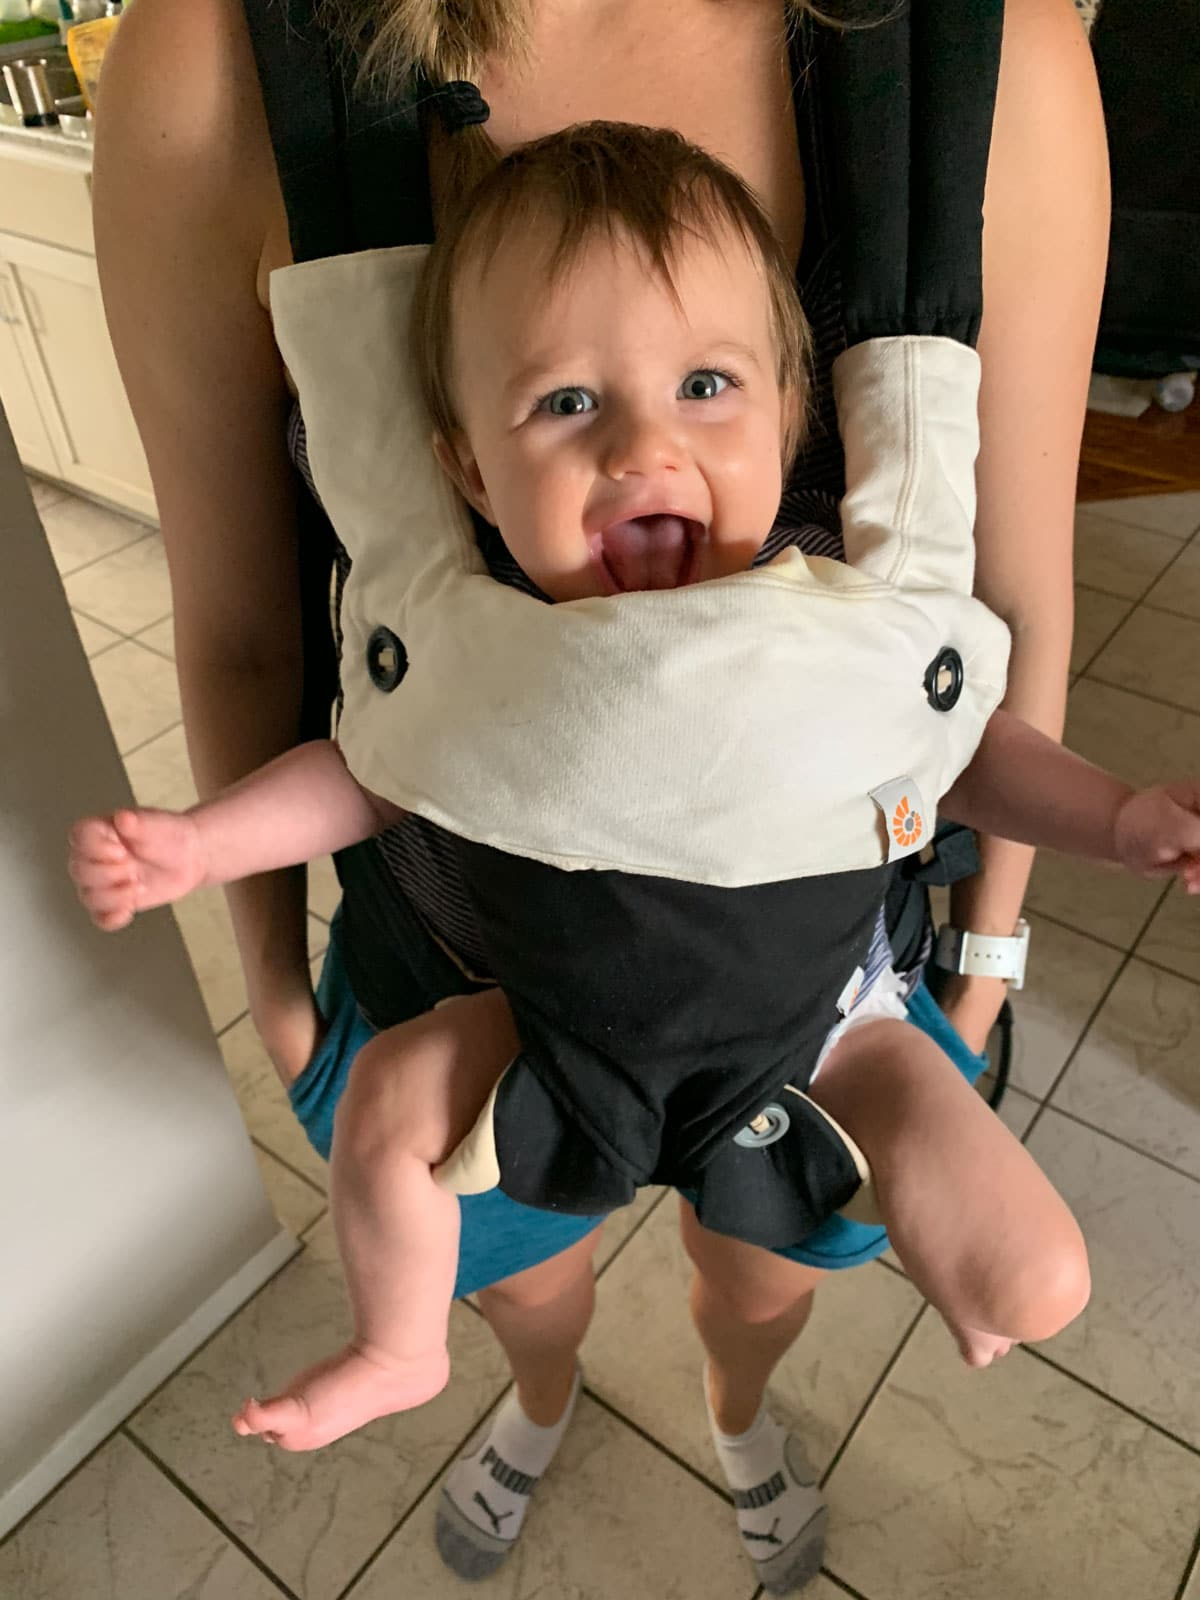 8 month old in ergobaby carrier